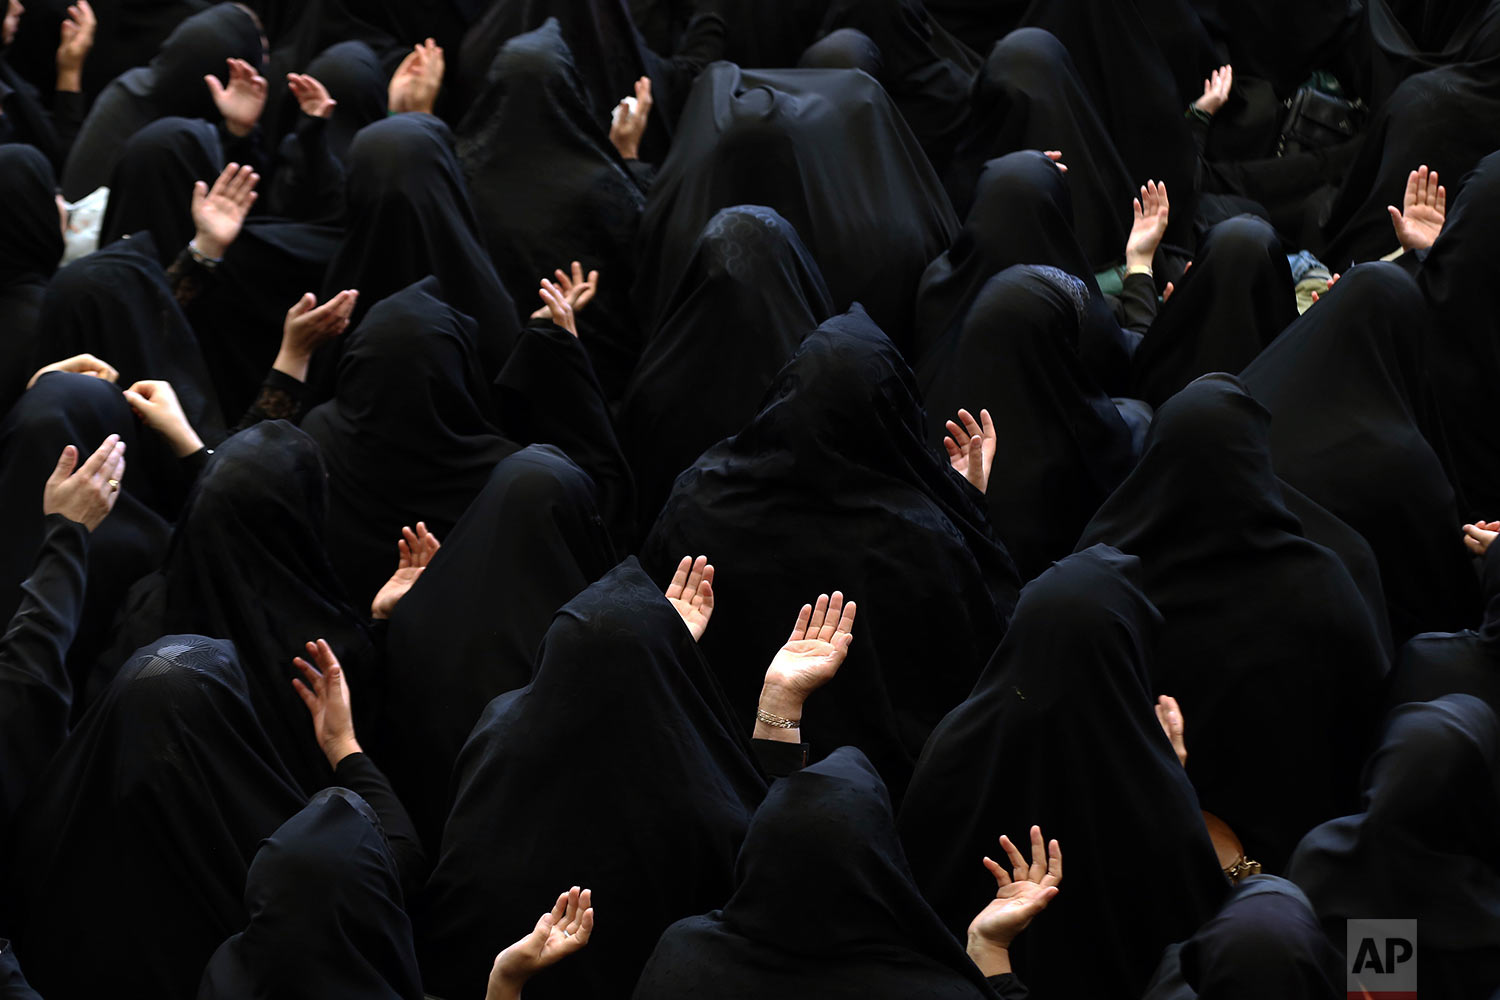 Iranian Shiite Muslim women mourn during a ceremony at Sadat Akhavi mosque in Tehran, Iran, Saturday, Sept. 30, 2017, a day prior to Ashoura, the death anniversary of 7th century Shiite Imam Hussein, the grandson of Prophet Muhammad, who was killed in a battle in Karbala in present-day Iraq. (AP Photo/Ebrahim Noroozi)